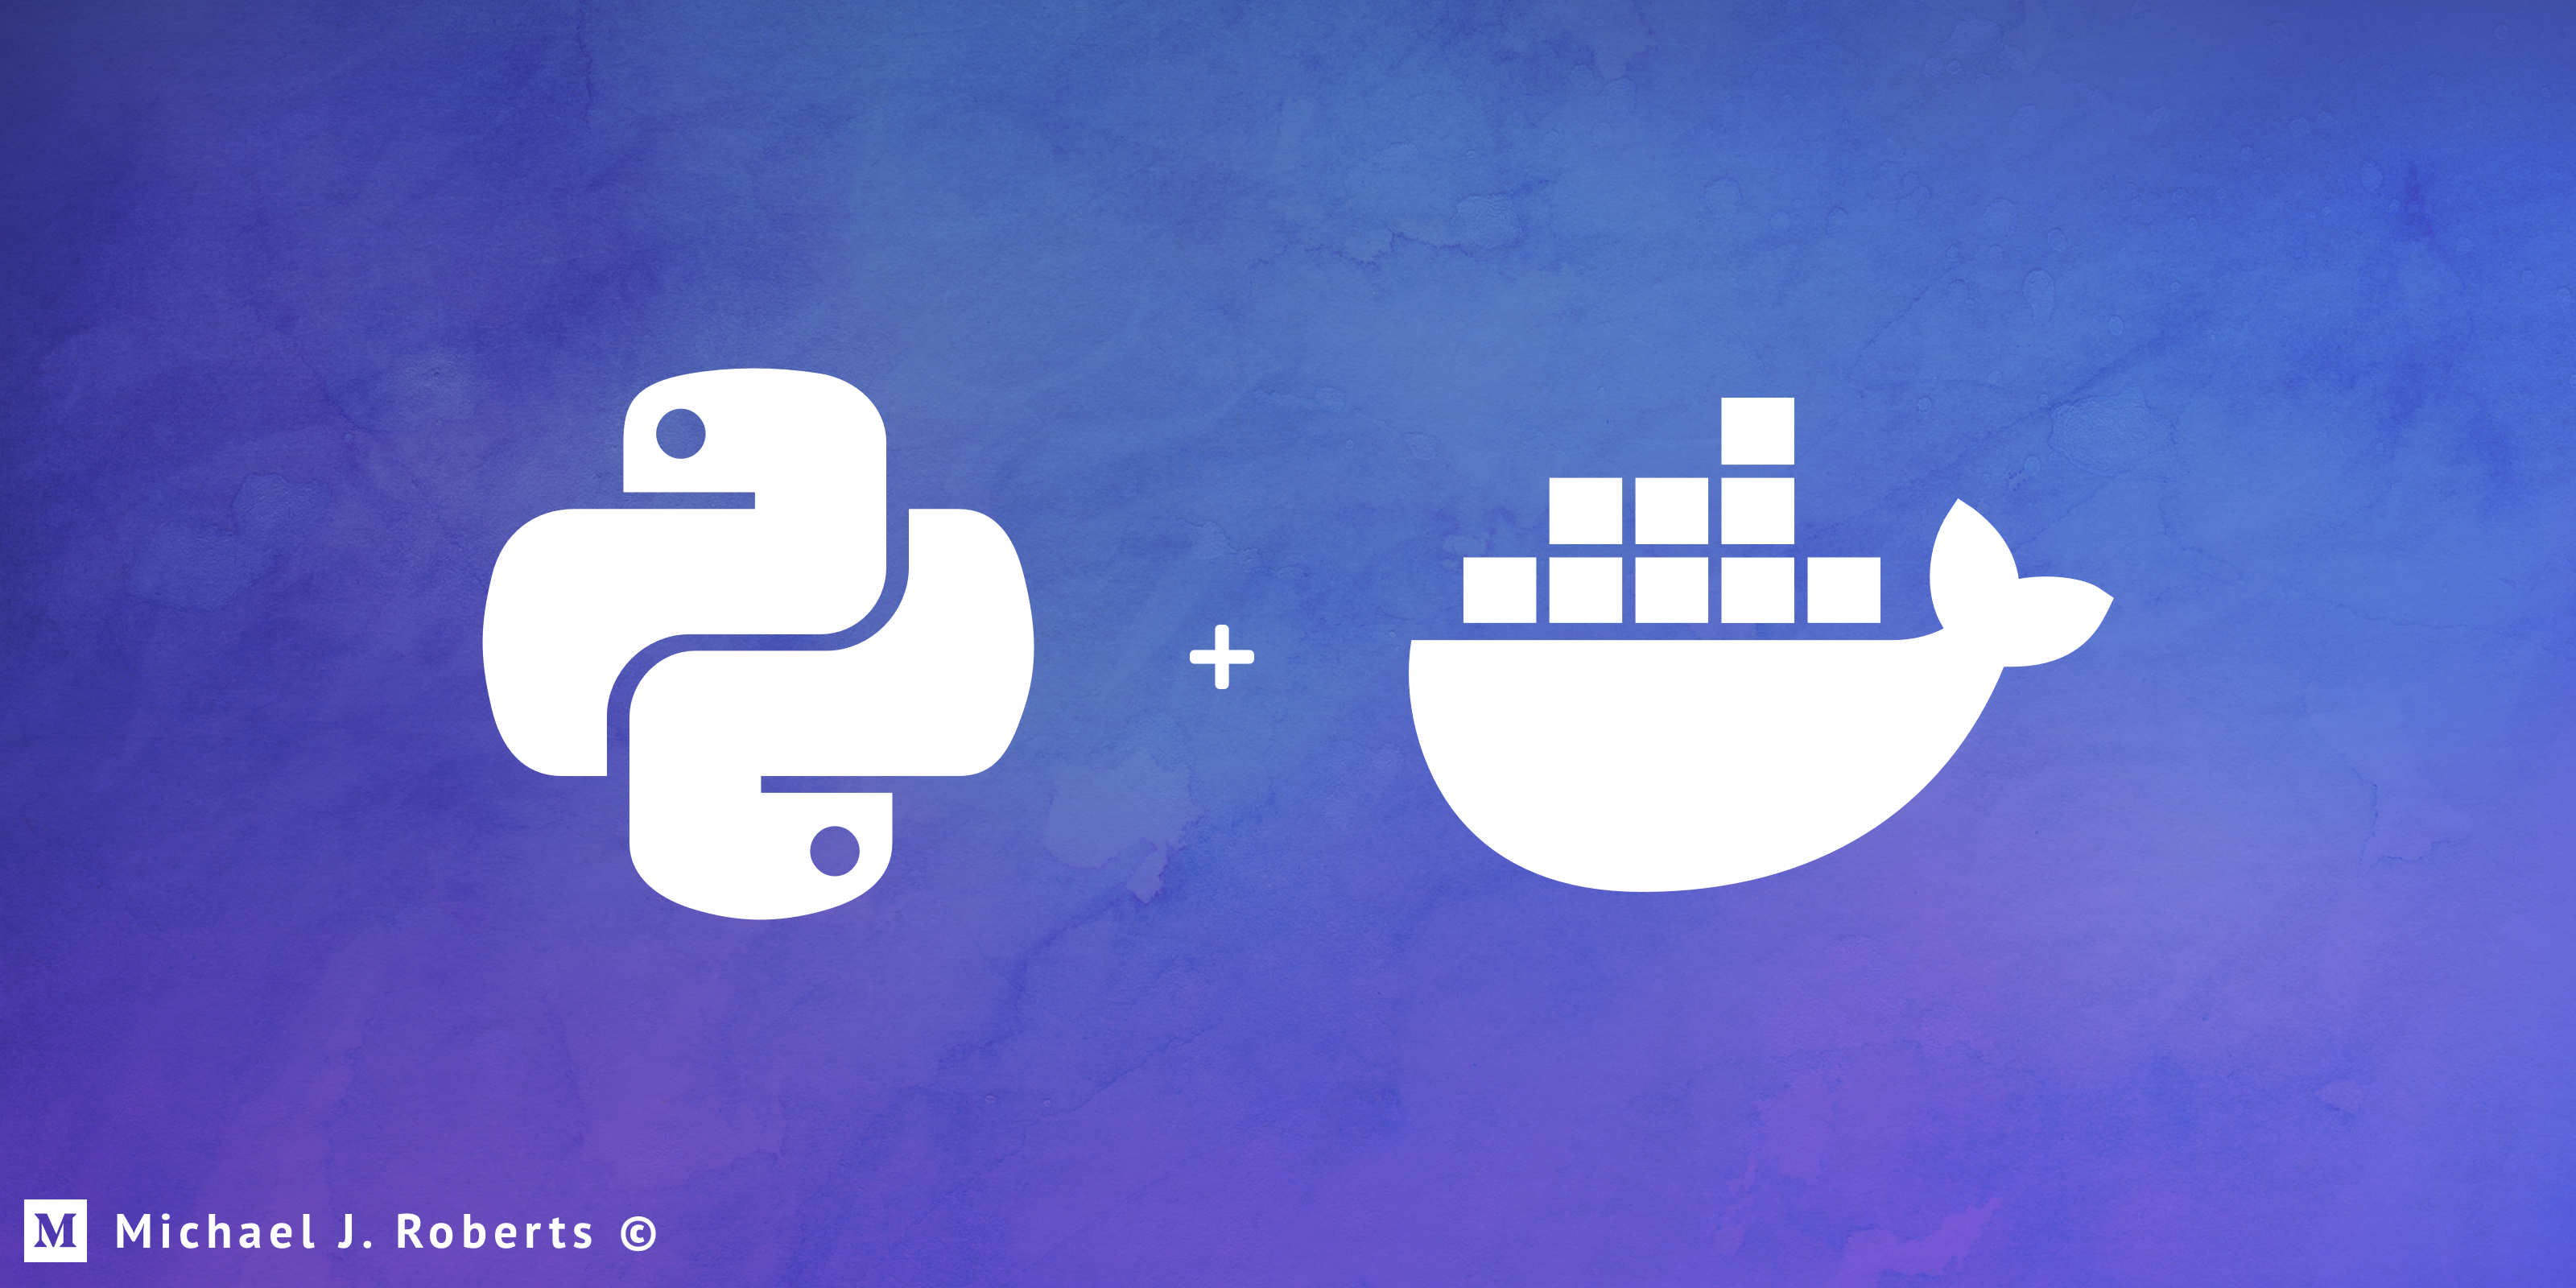 Using Docker compose to setup a simple Django/PostgreSQL